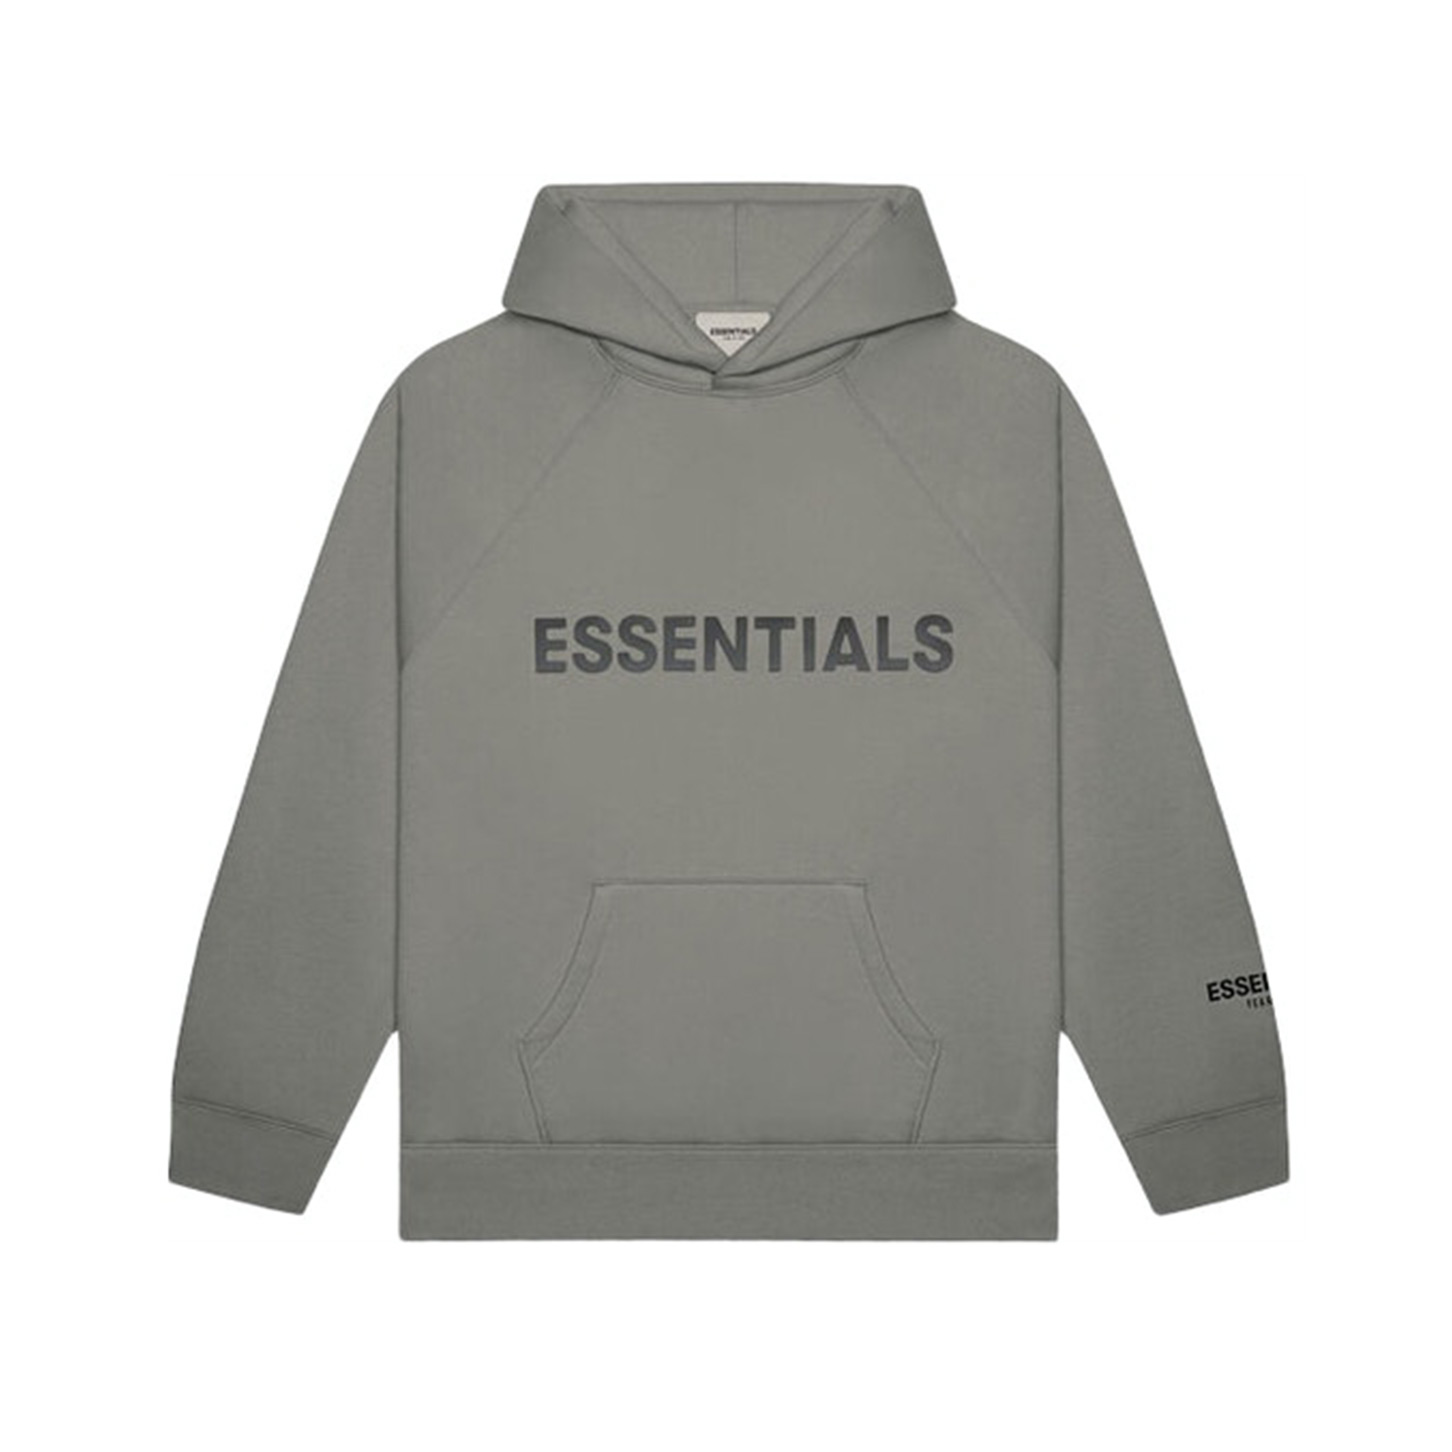 FEAR OF GOD ESSENTIALS Pullover Hoodie Gray Flannel/Charcoal